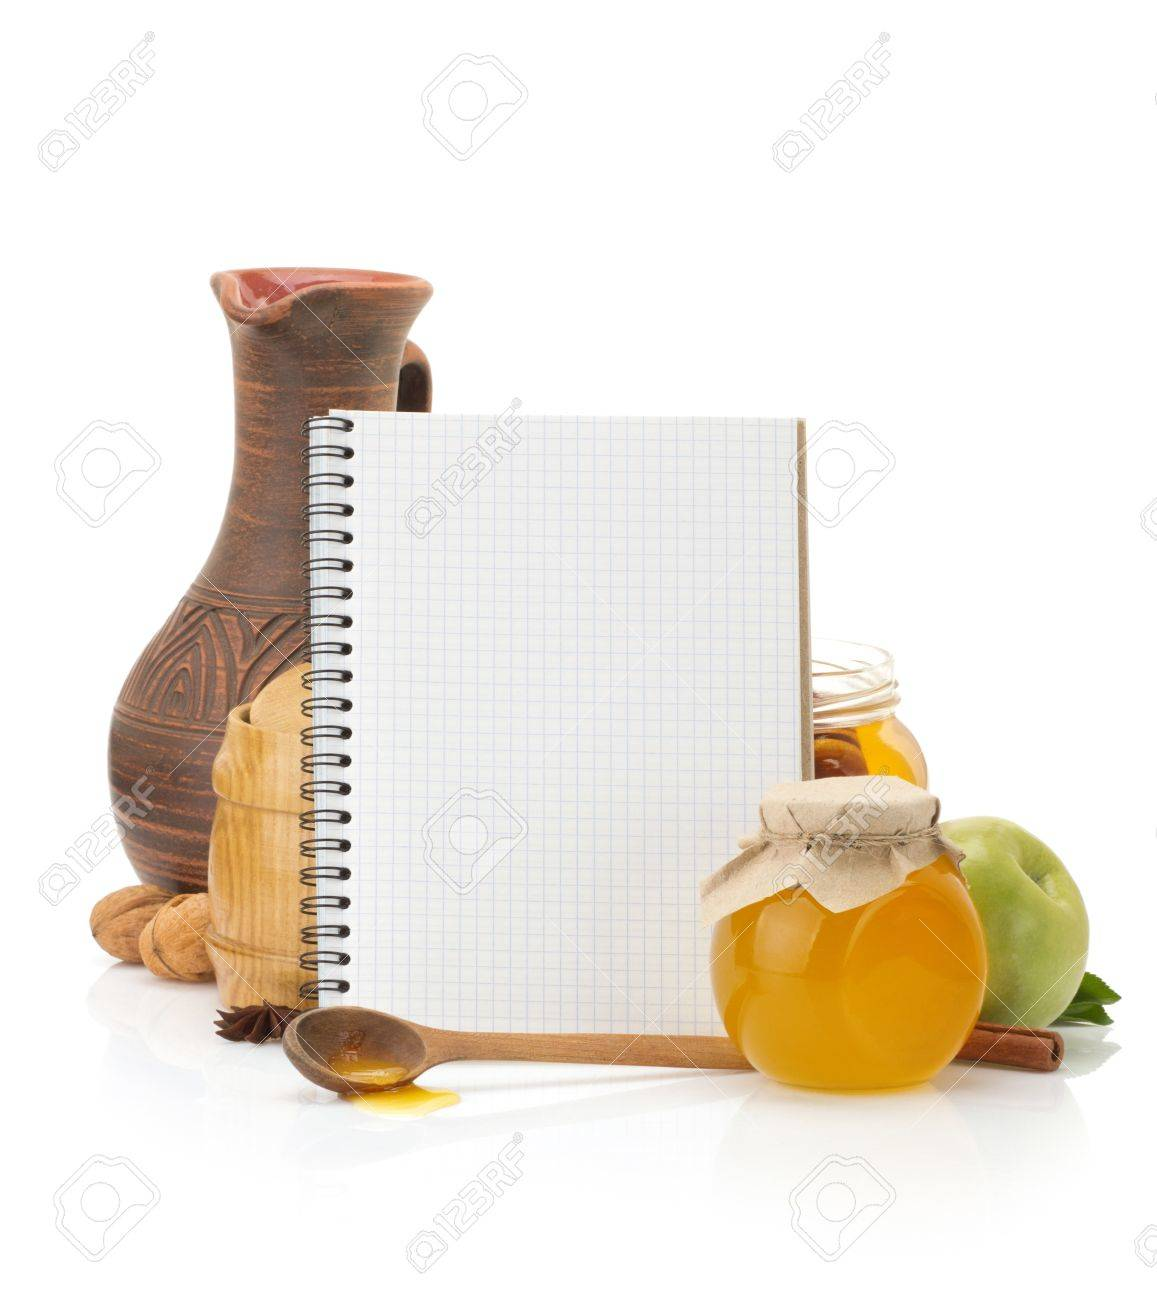 cooking recipes book and food isolated on white background - 21012917